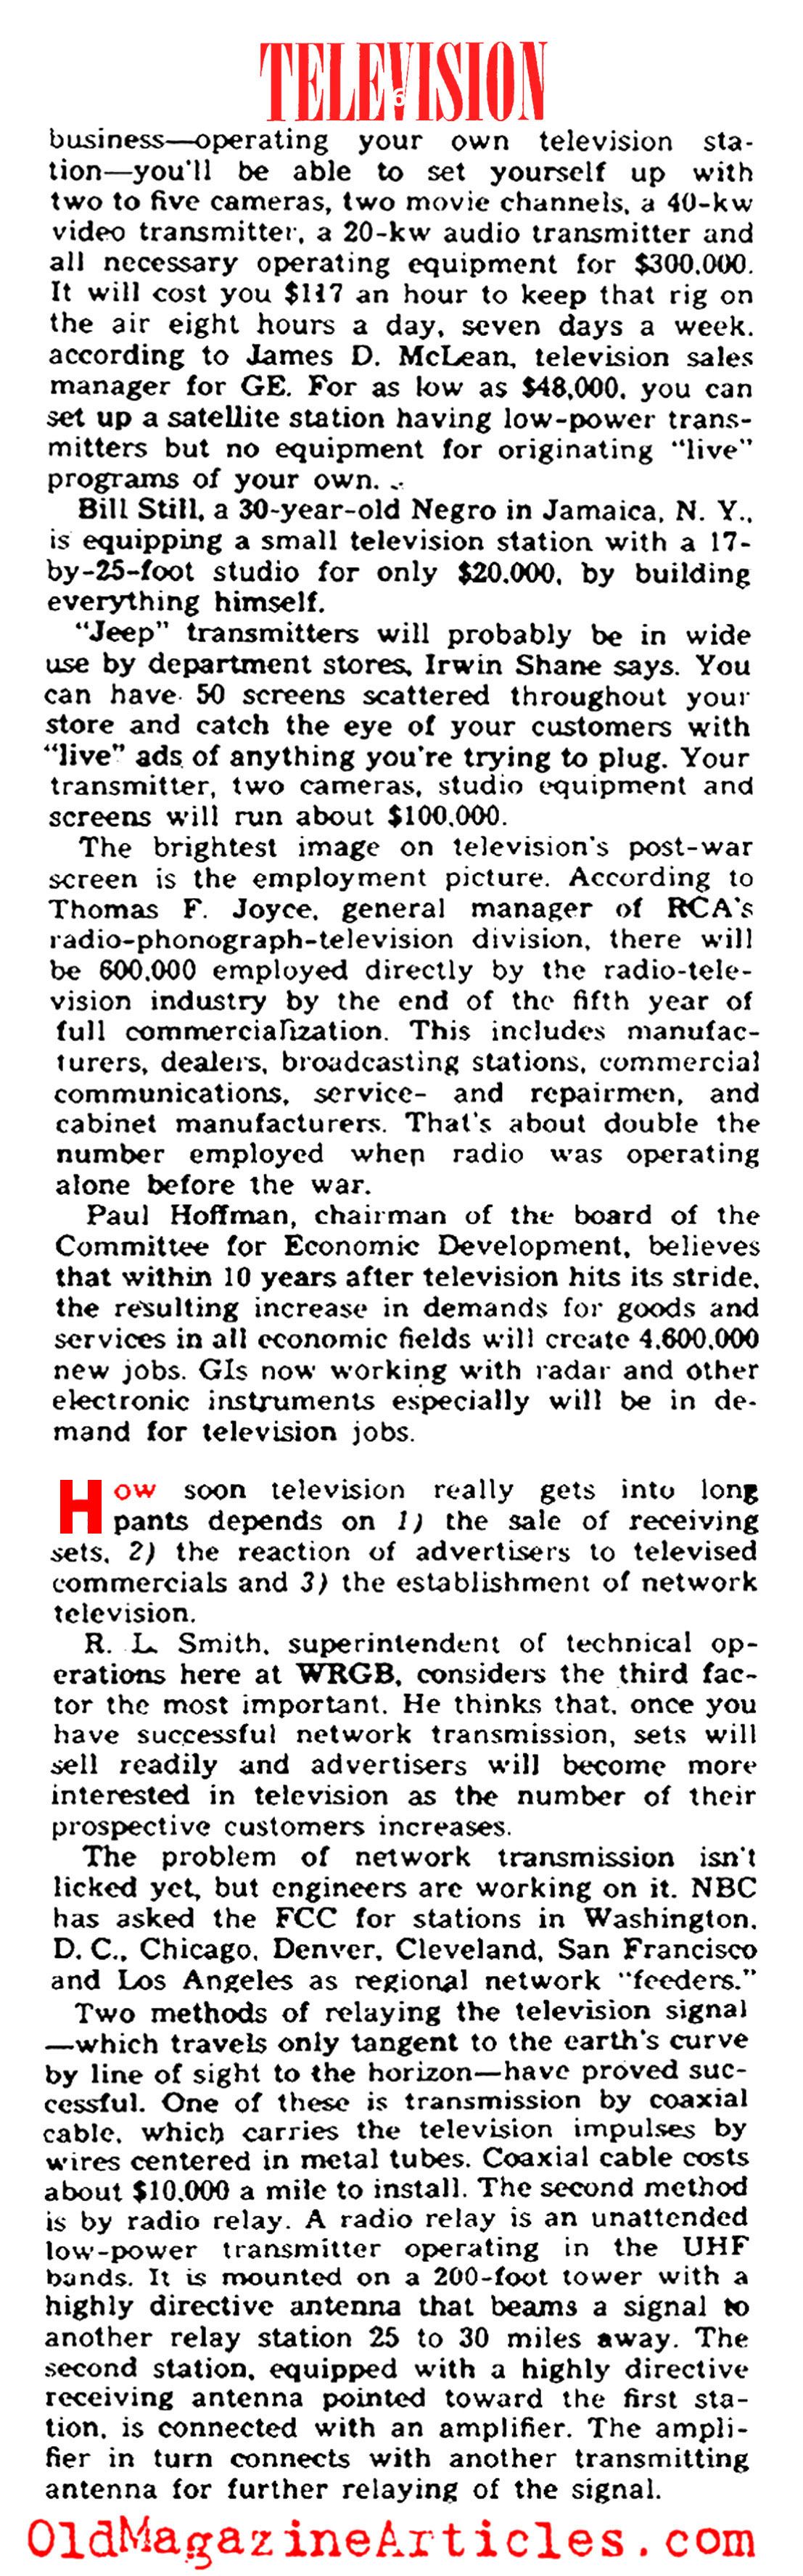 T.V. as It Was in 1945 (Yank Magazine, 1945)